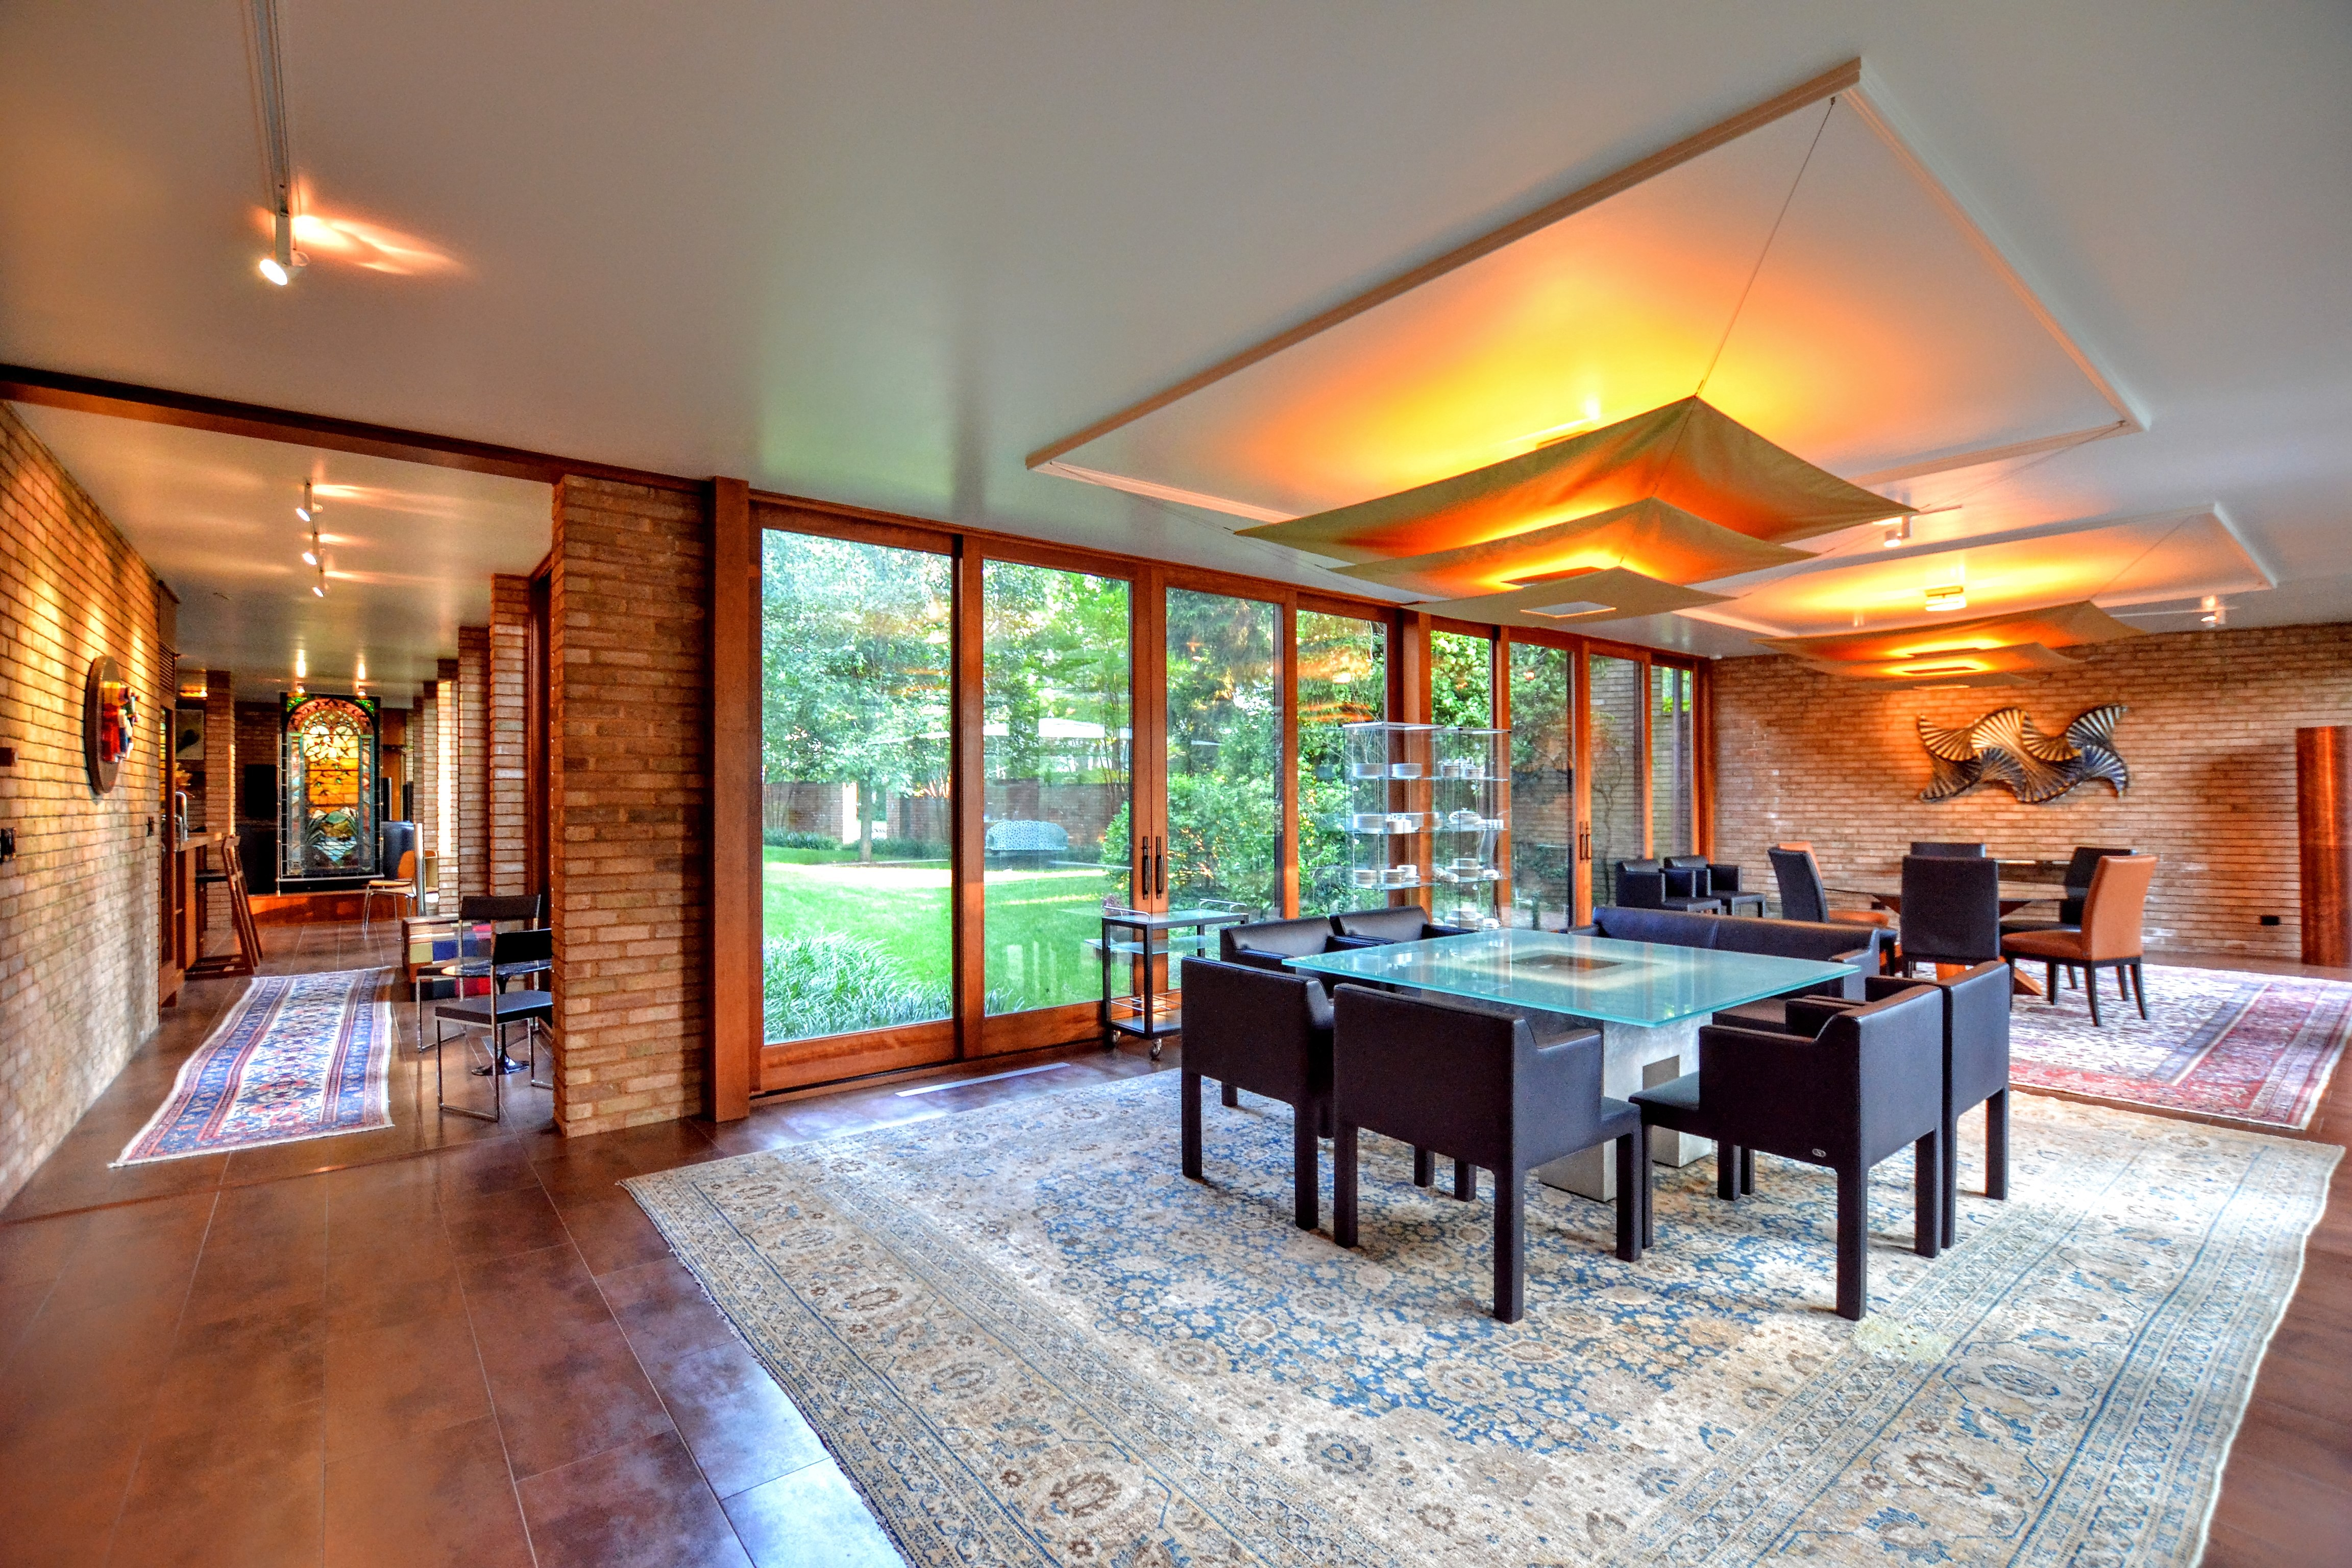 Frank Lloyd Wright S Robie House Inspired This 60s Home Designed By A Protege